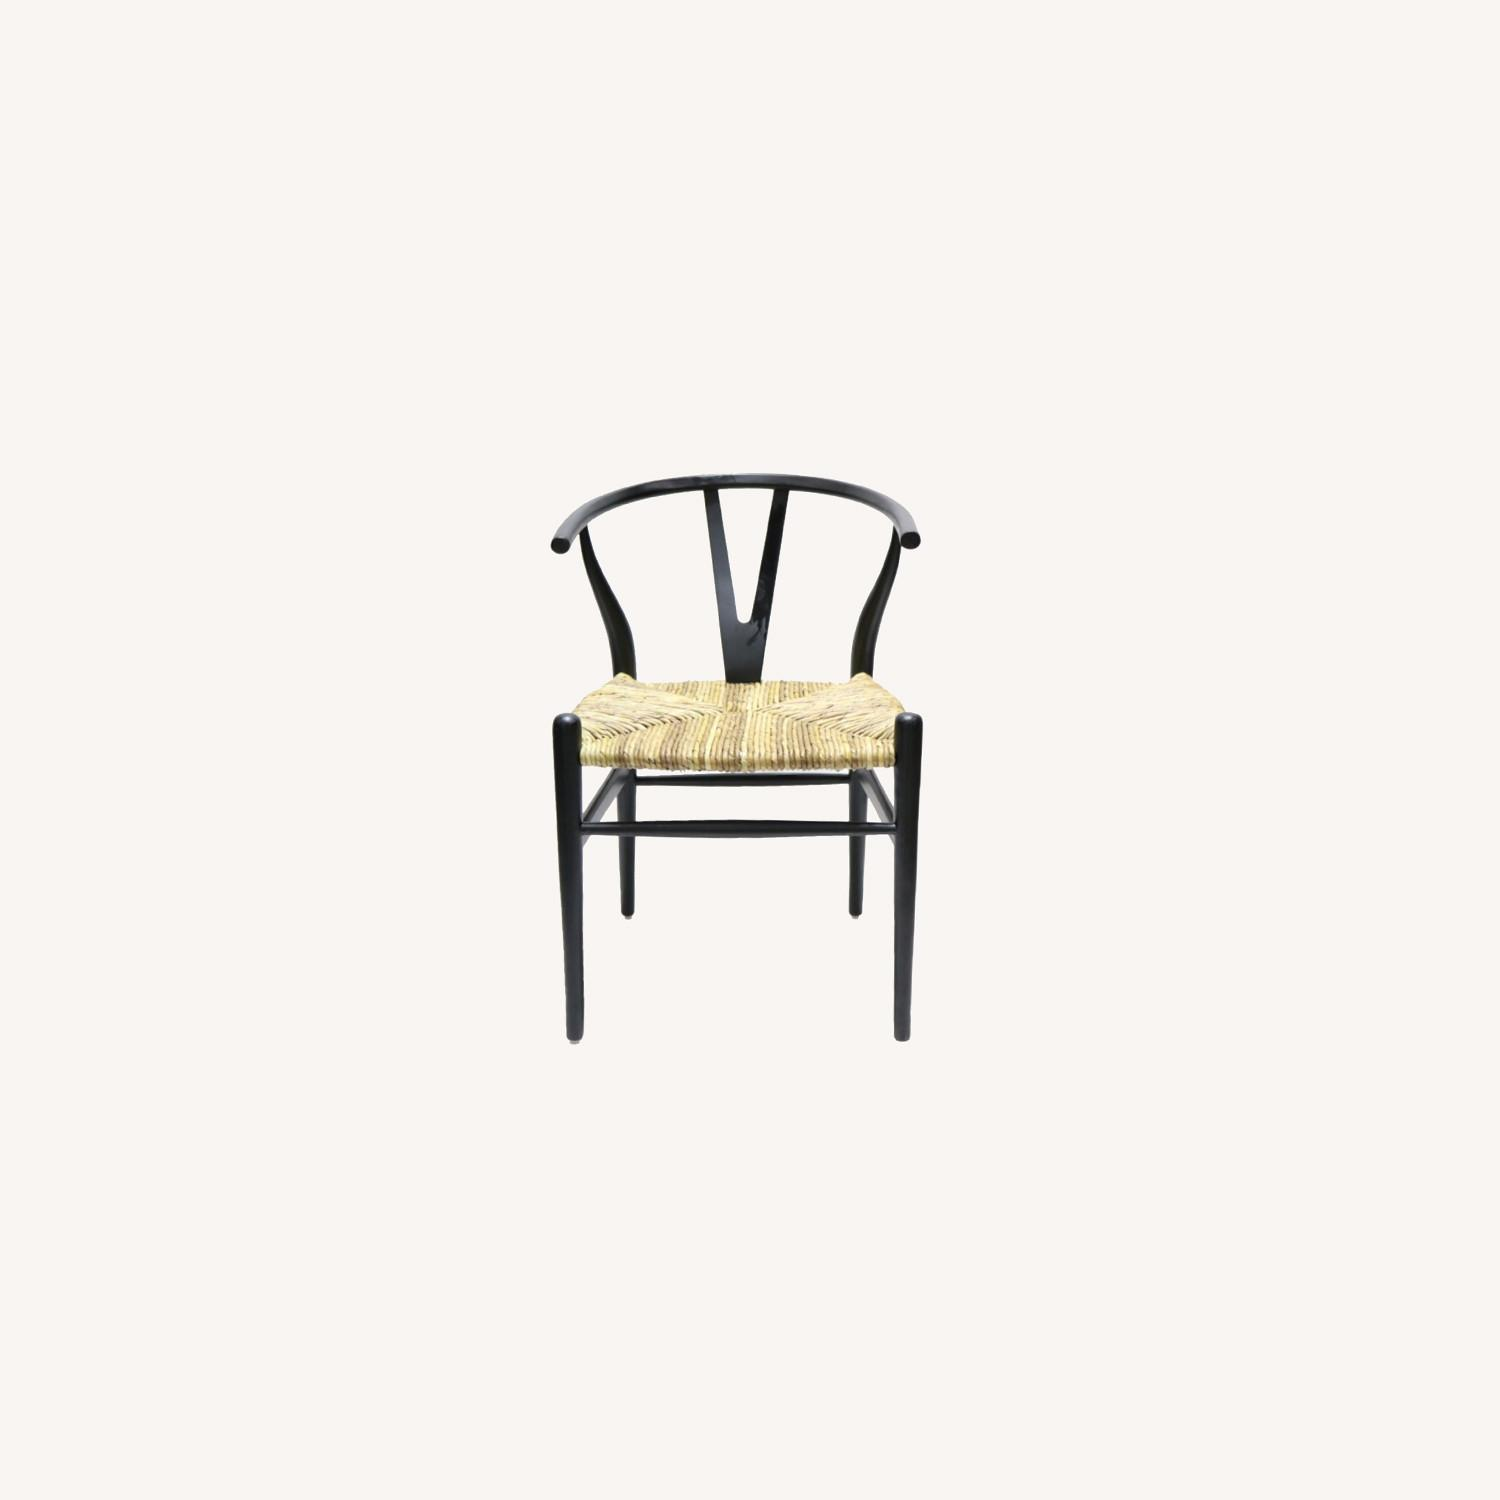 Dining Chair In Black Frame & Natural Hemp Seat - image-0